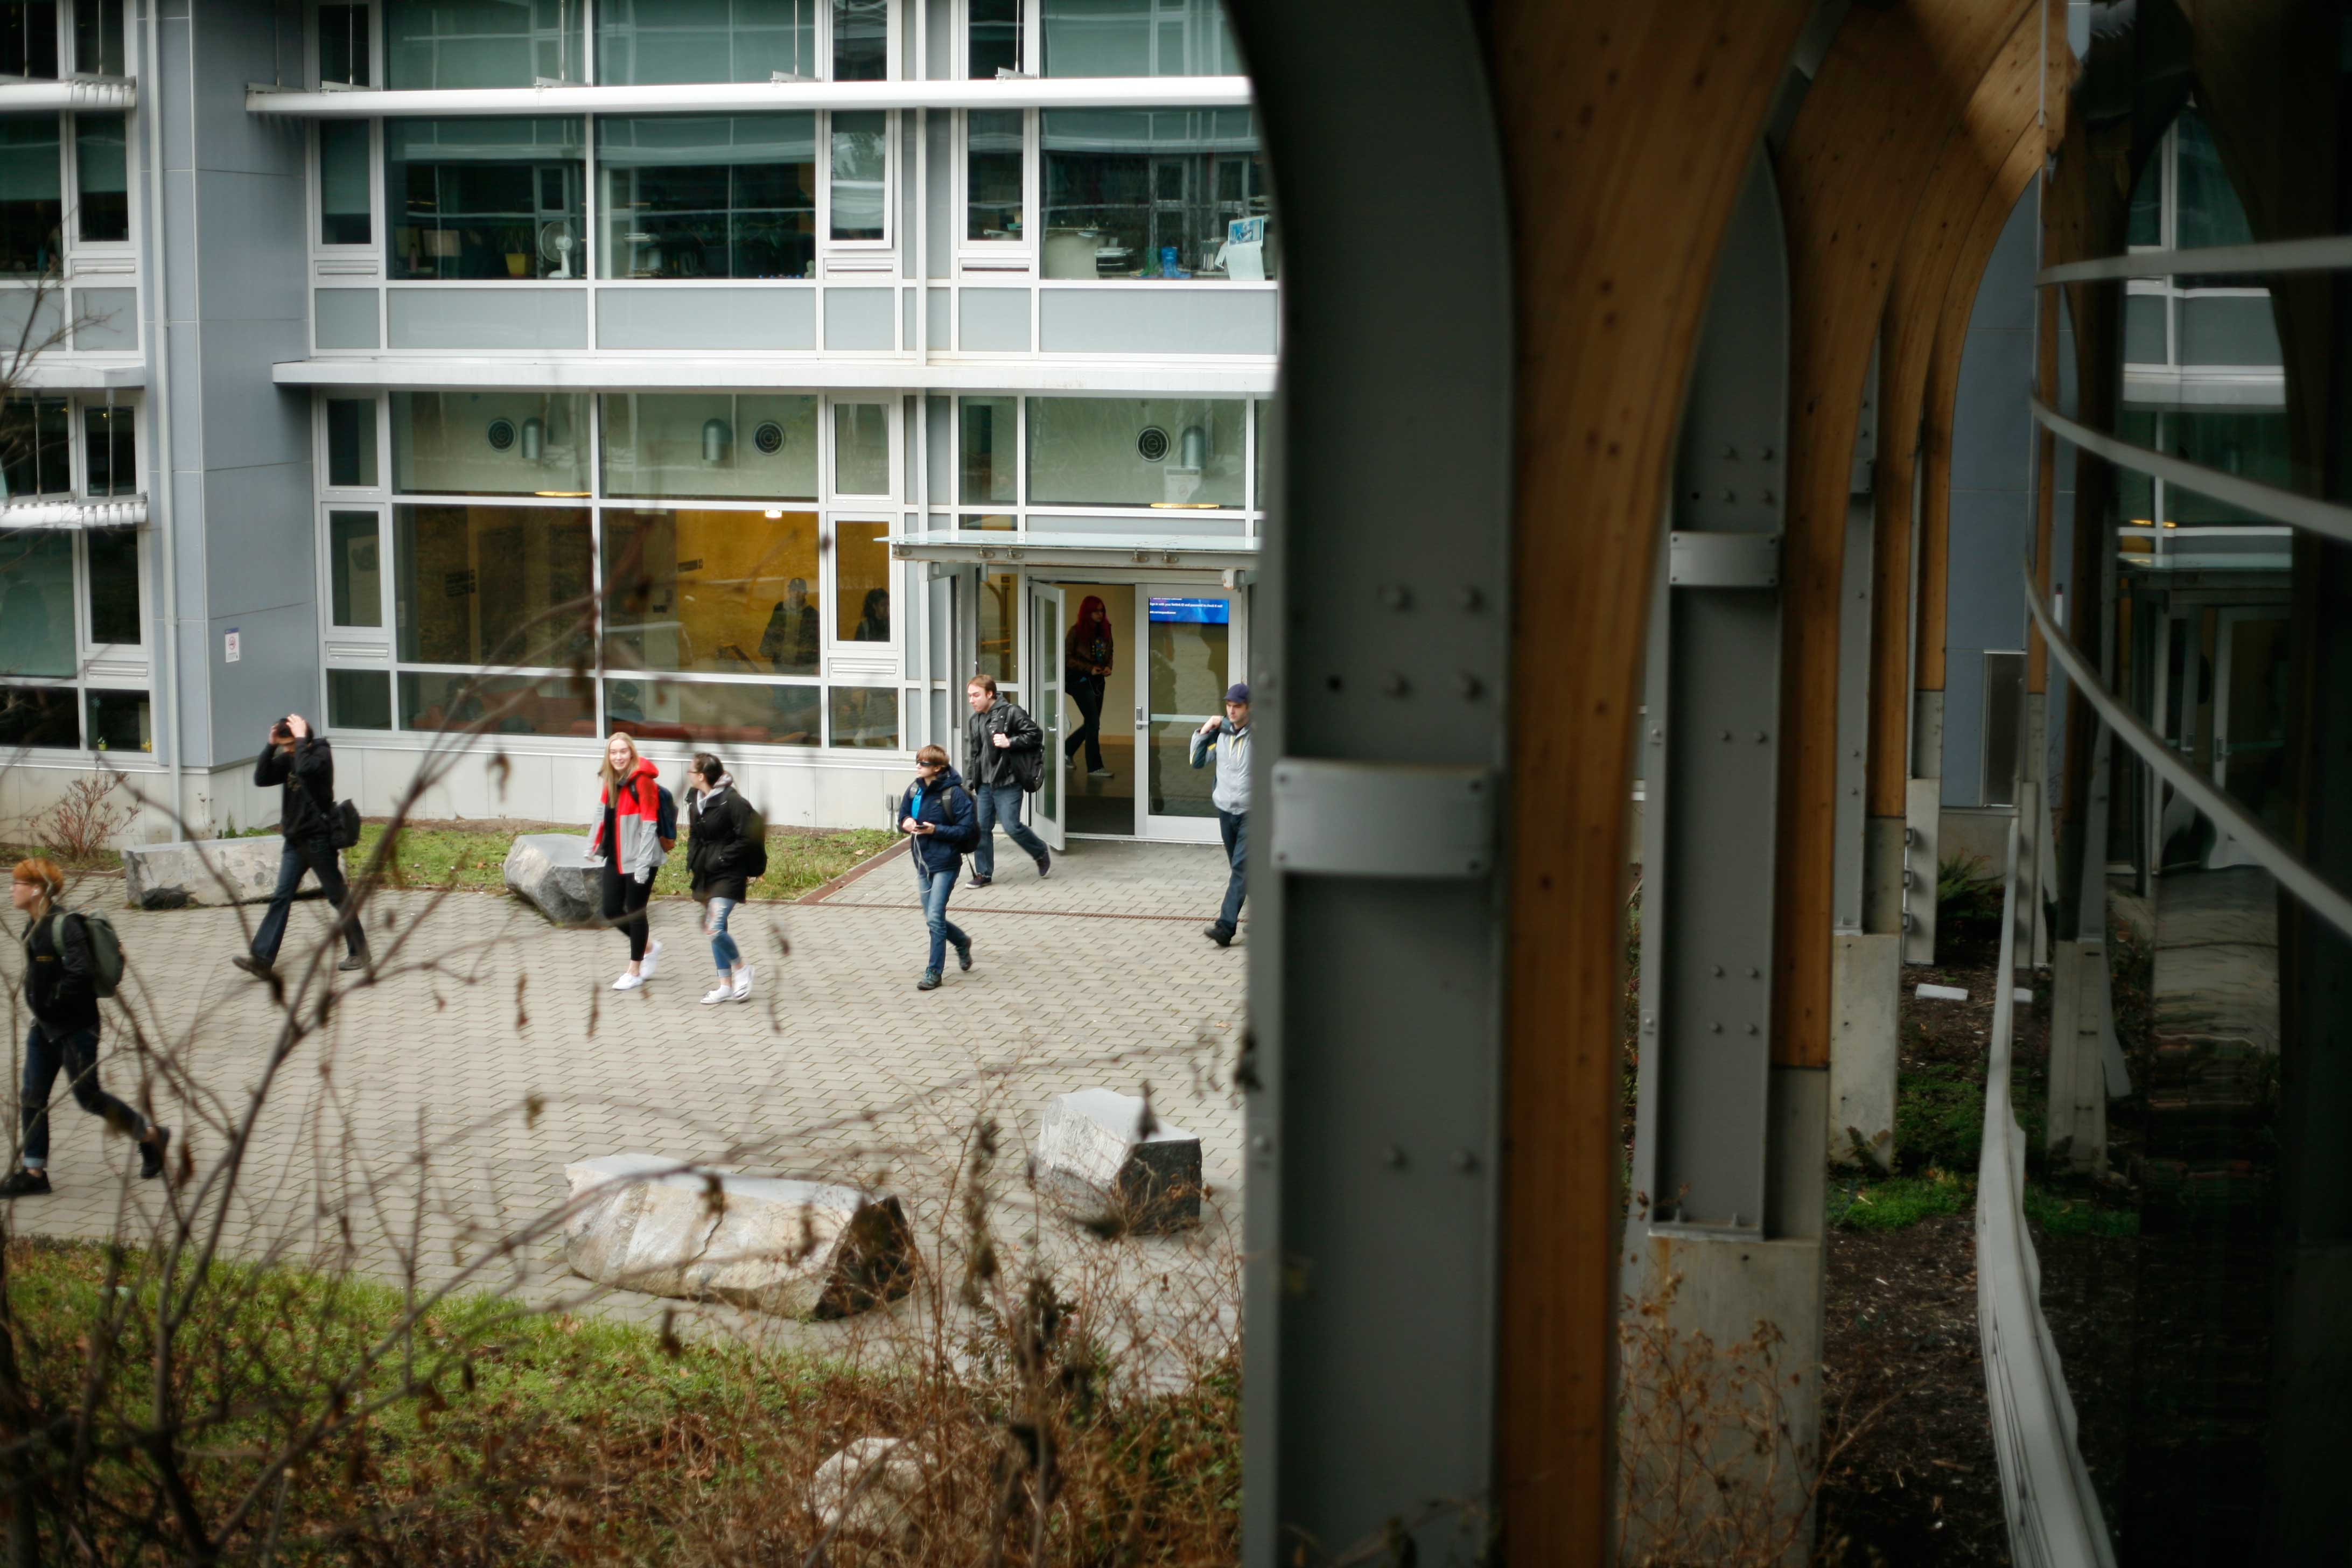 uvic theses and dissertations